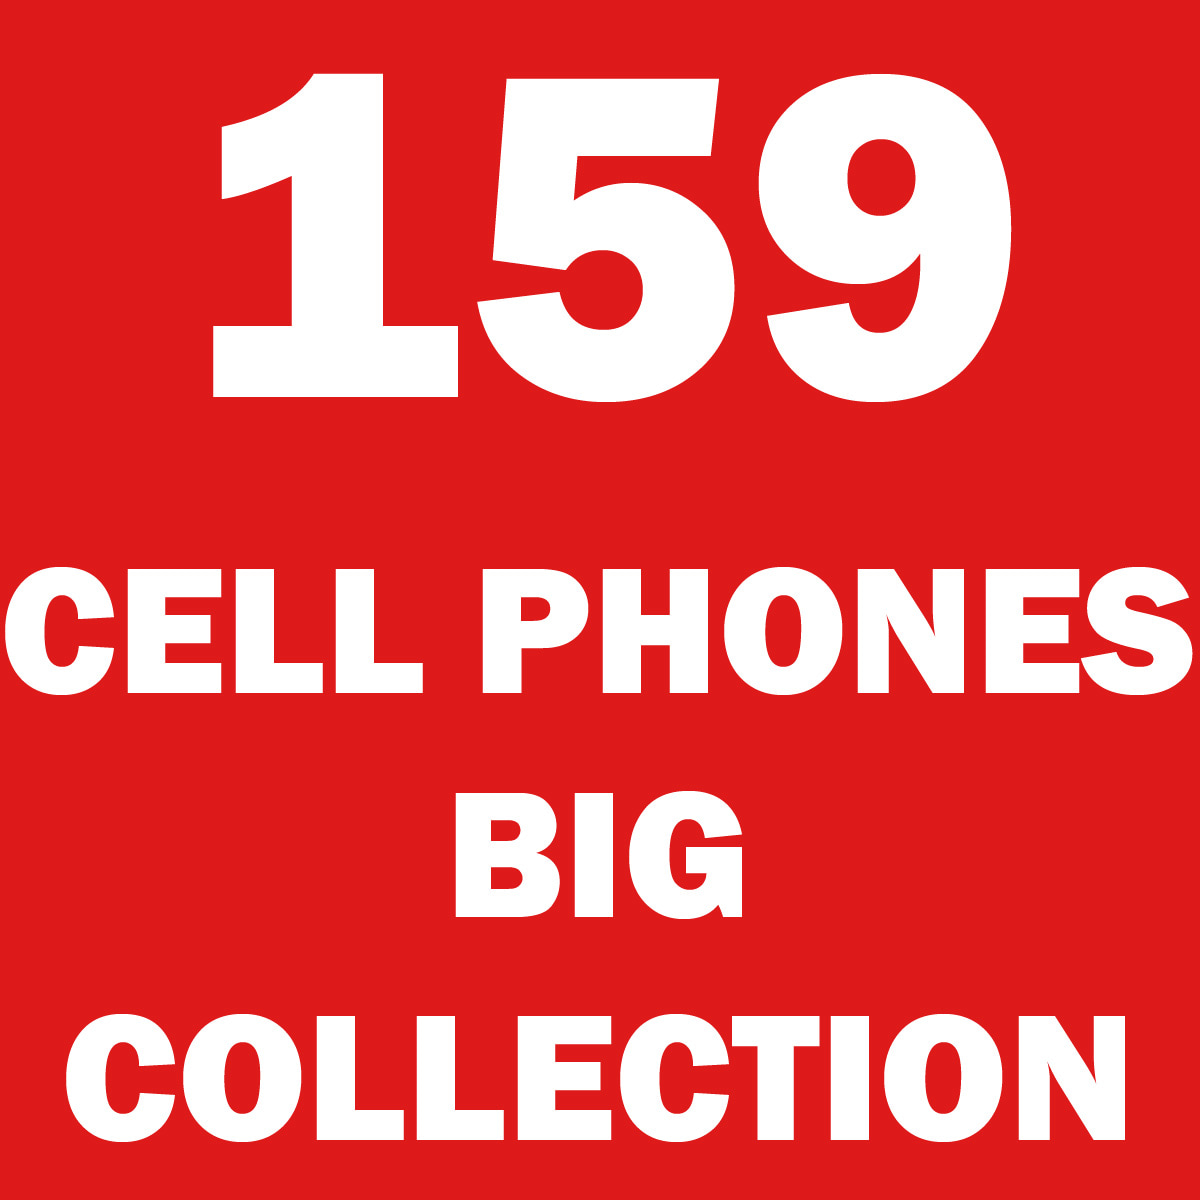 Cellphones_Collection_V78_000.jpg